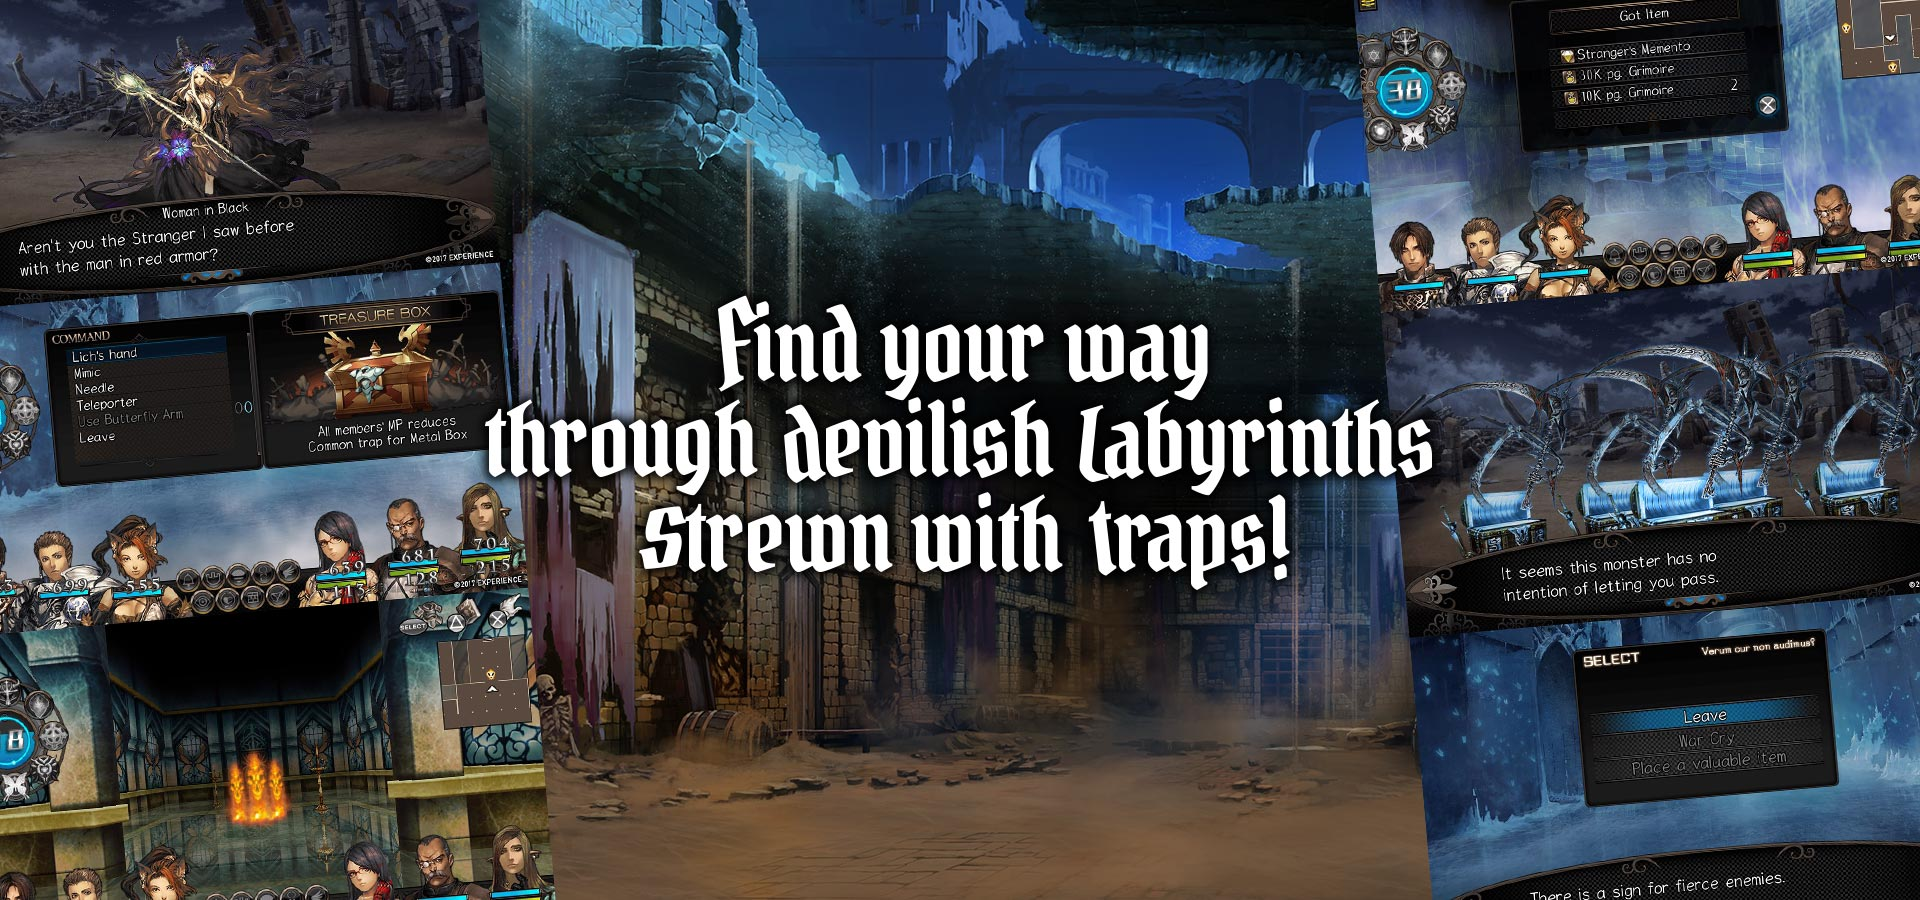 Find your way through devilish Labyrinths strewn with traps!